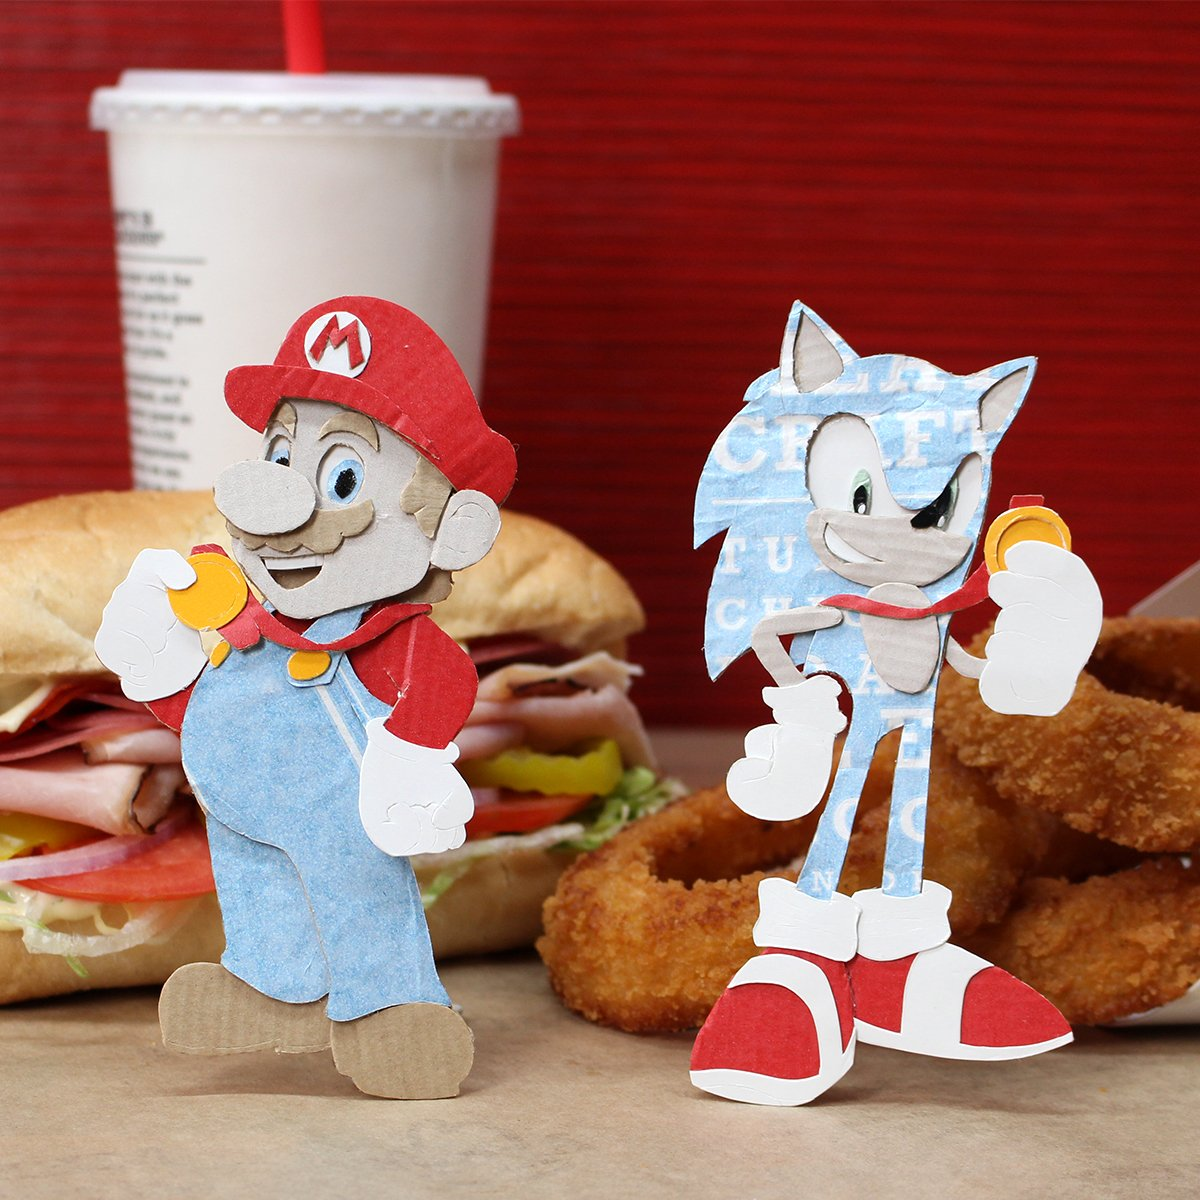 Arby's celebrates the release of 'Mario & Sonic at the Olympic Games Tokyo 2020'